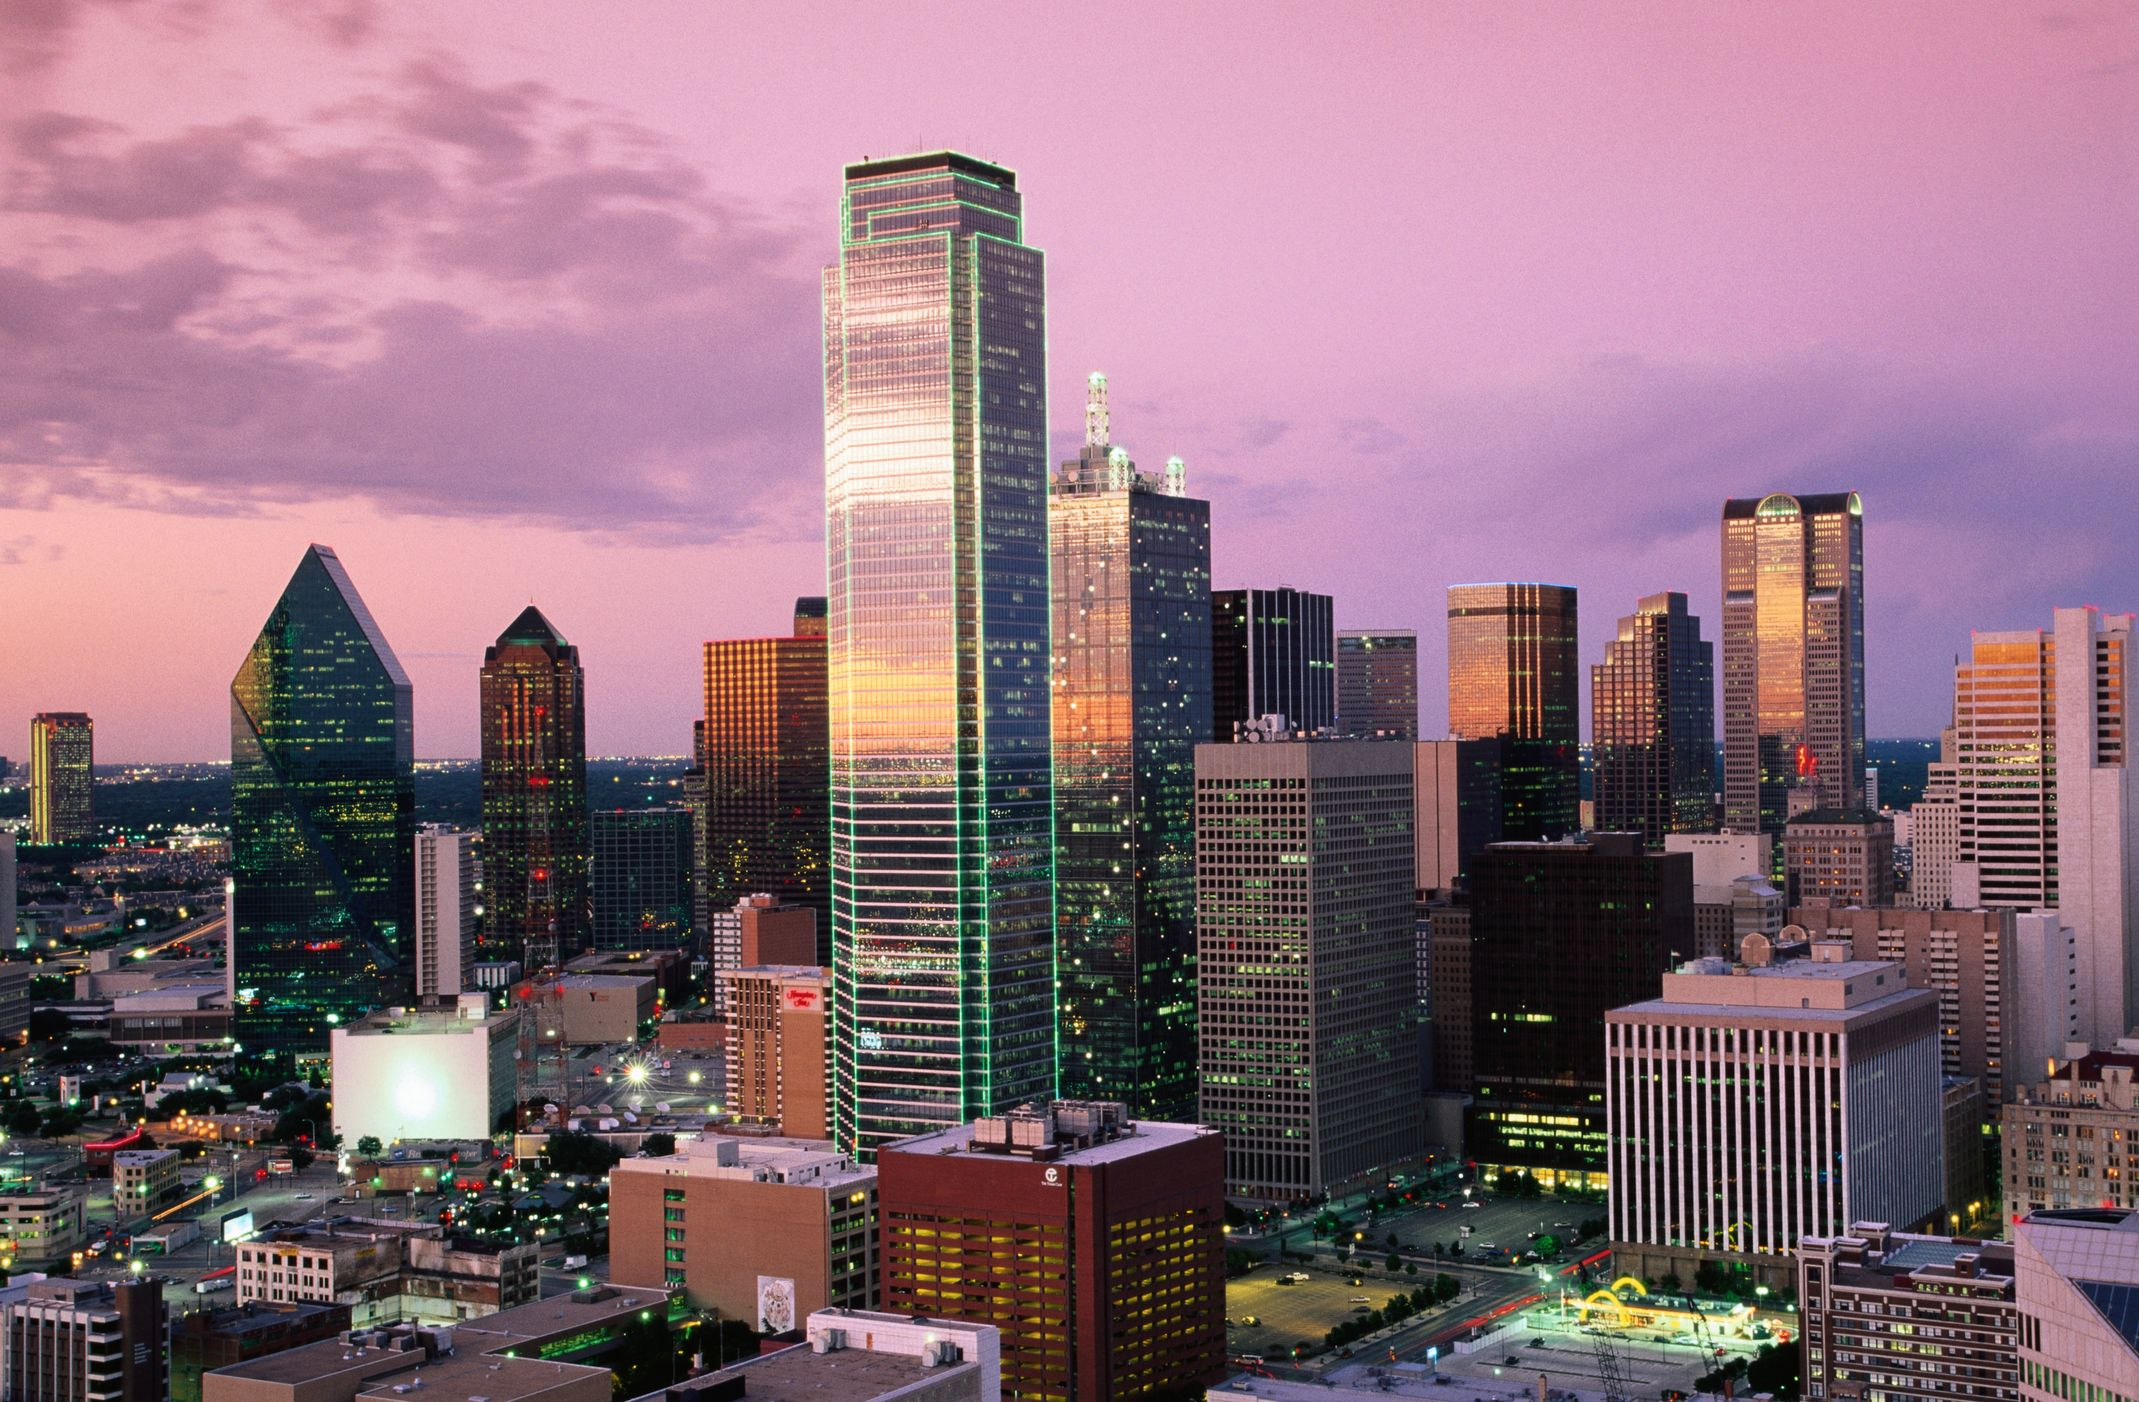 Hackers set off dallas emergency sirens citywide museums